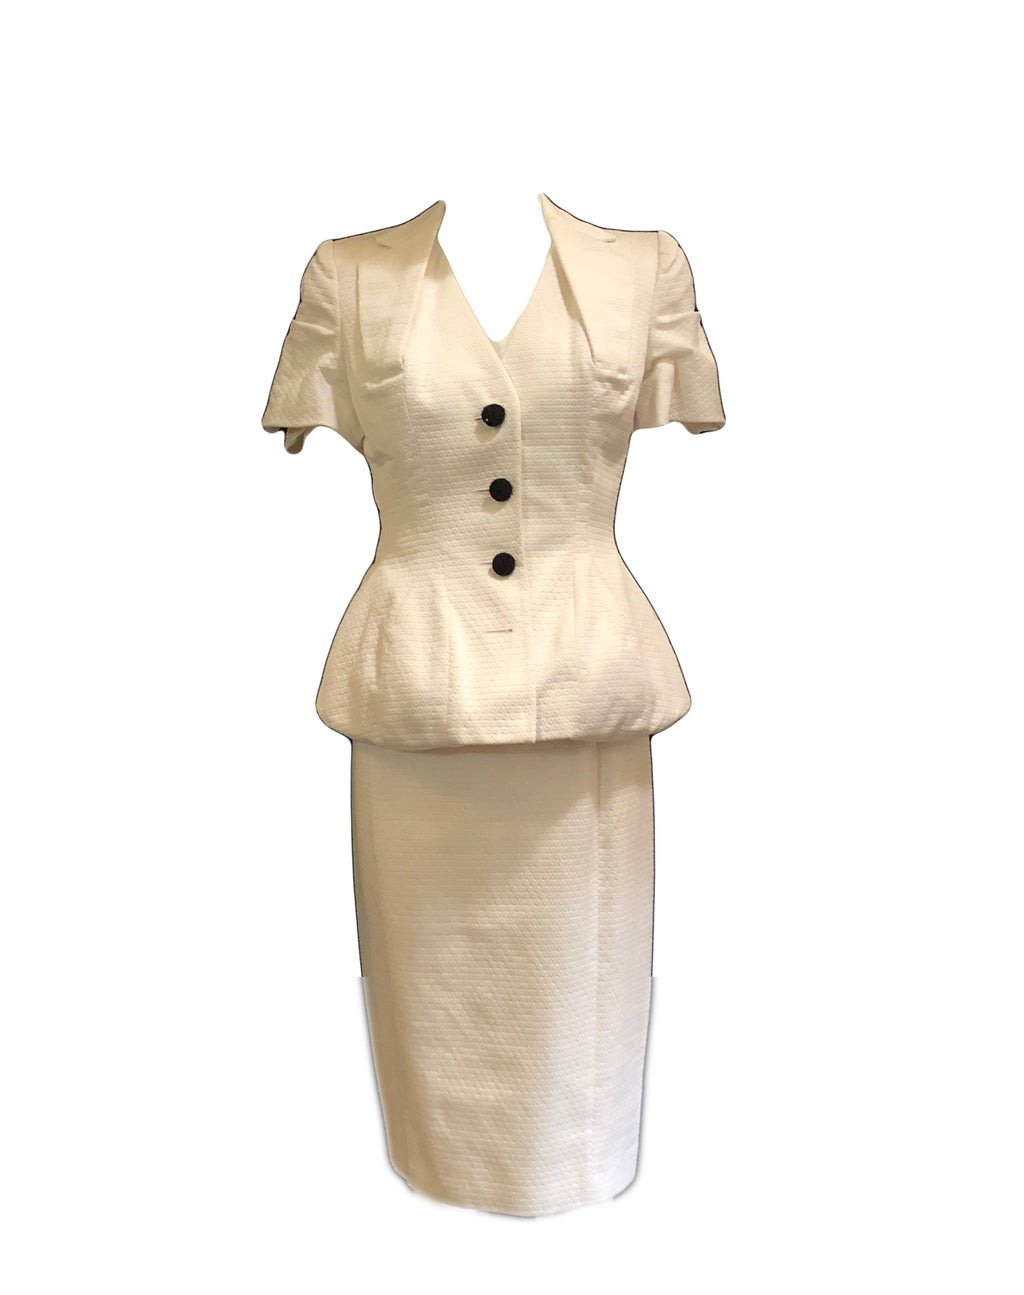 John Galliano Iconic White Pique Dress and Jacket  1 of 7